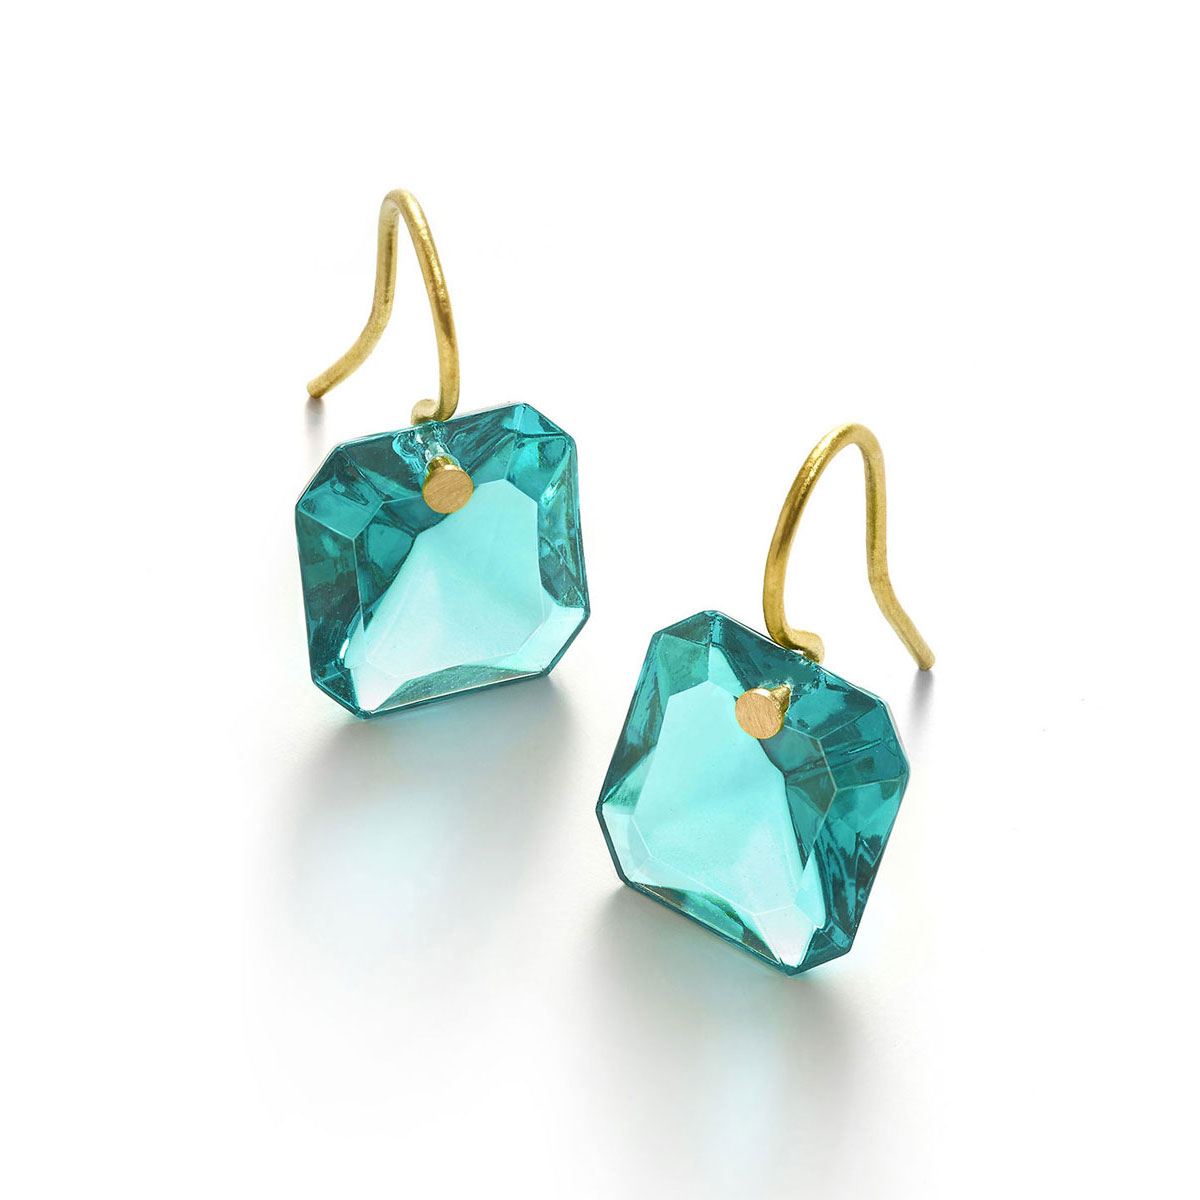 Baccarat Crystal Marie-Helene De Taillac Earrings Small Wire Vermeil Gold Turquoise